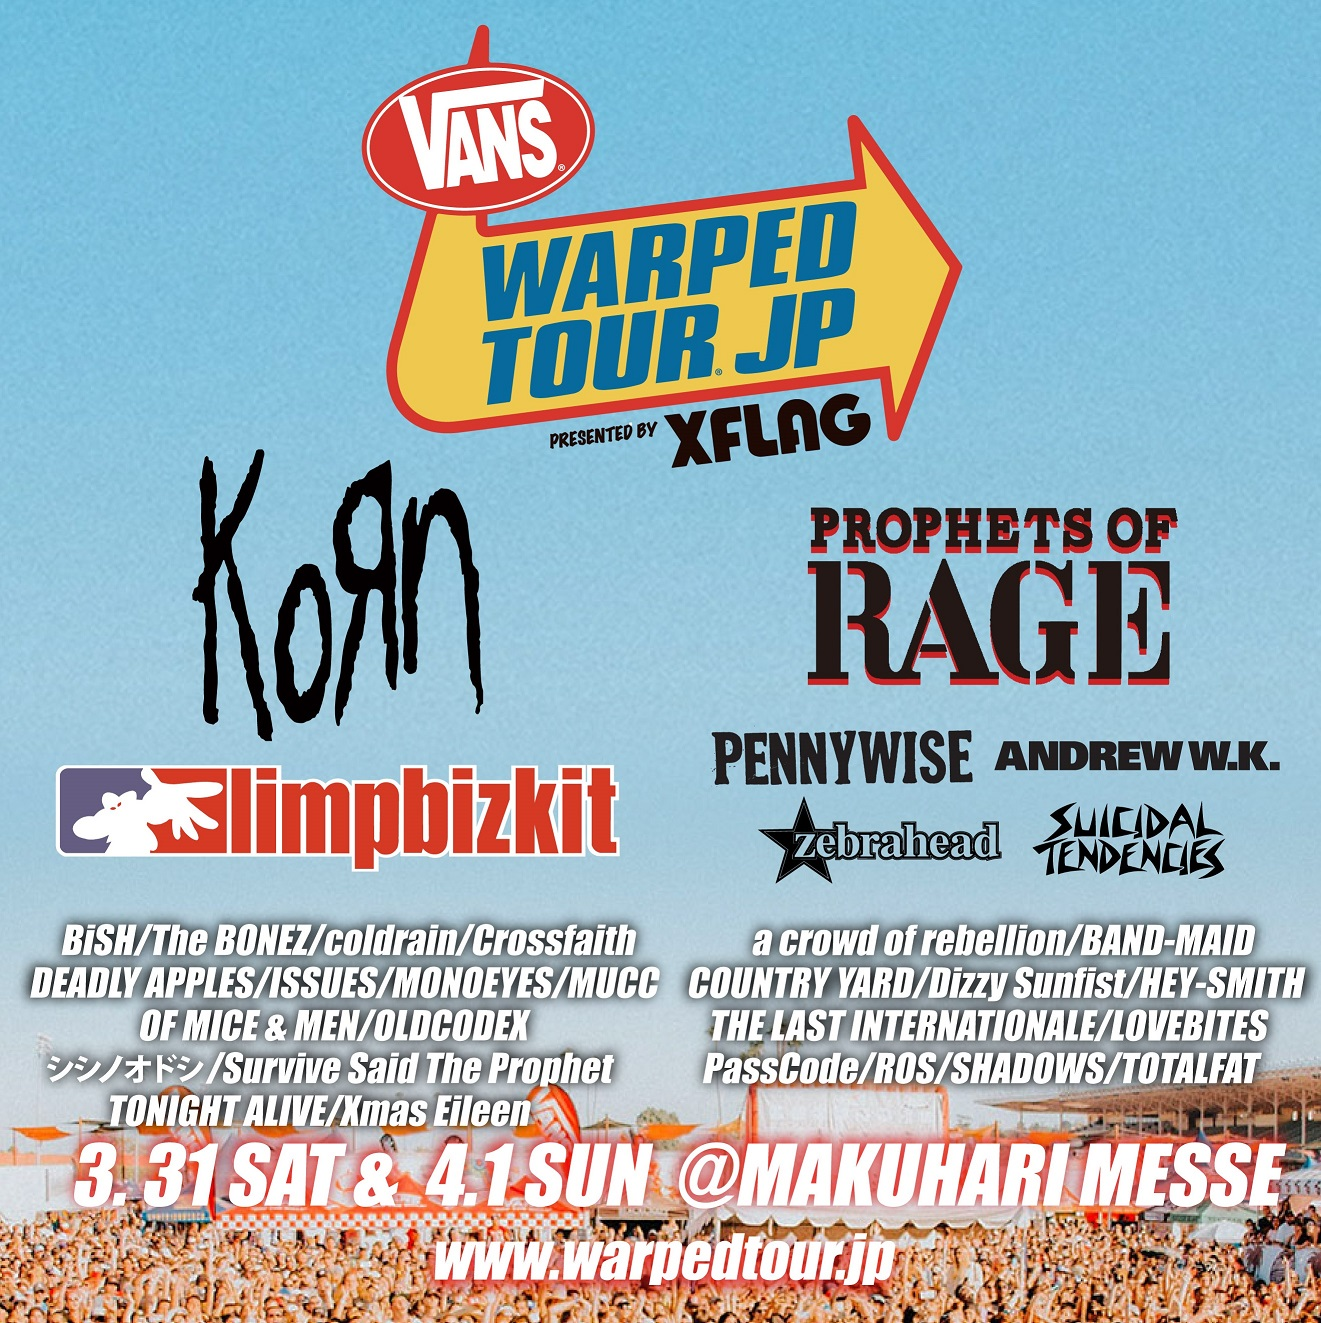 VANS WARPED TOUR JAPAN 2018 presented by XFLAG (ヴァンズワープドツアー ジャパン2018 )